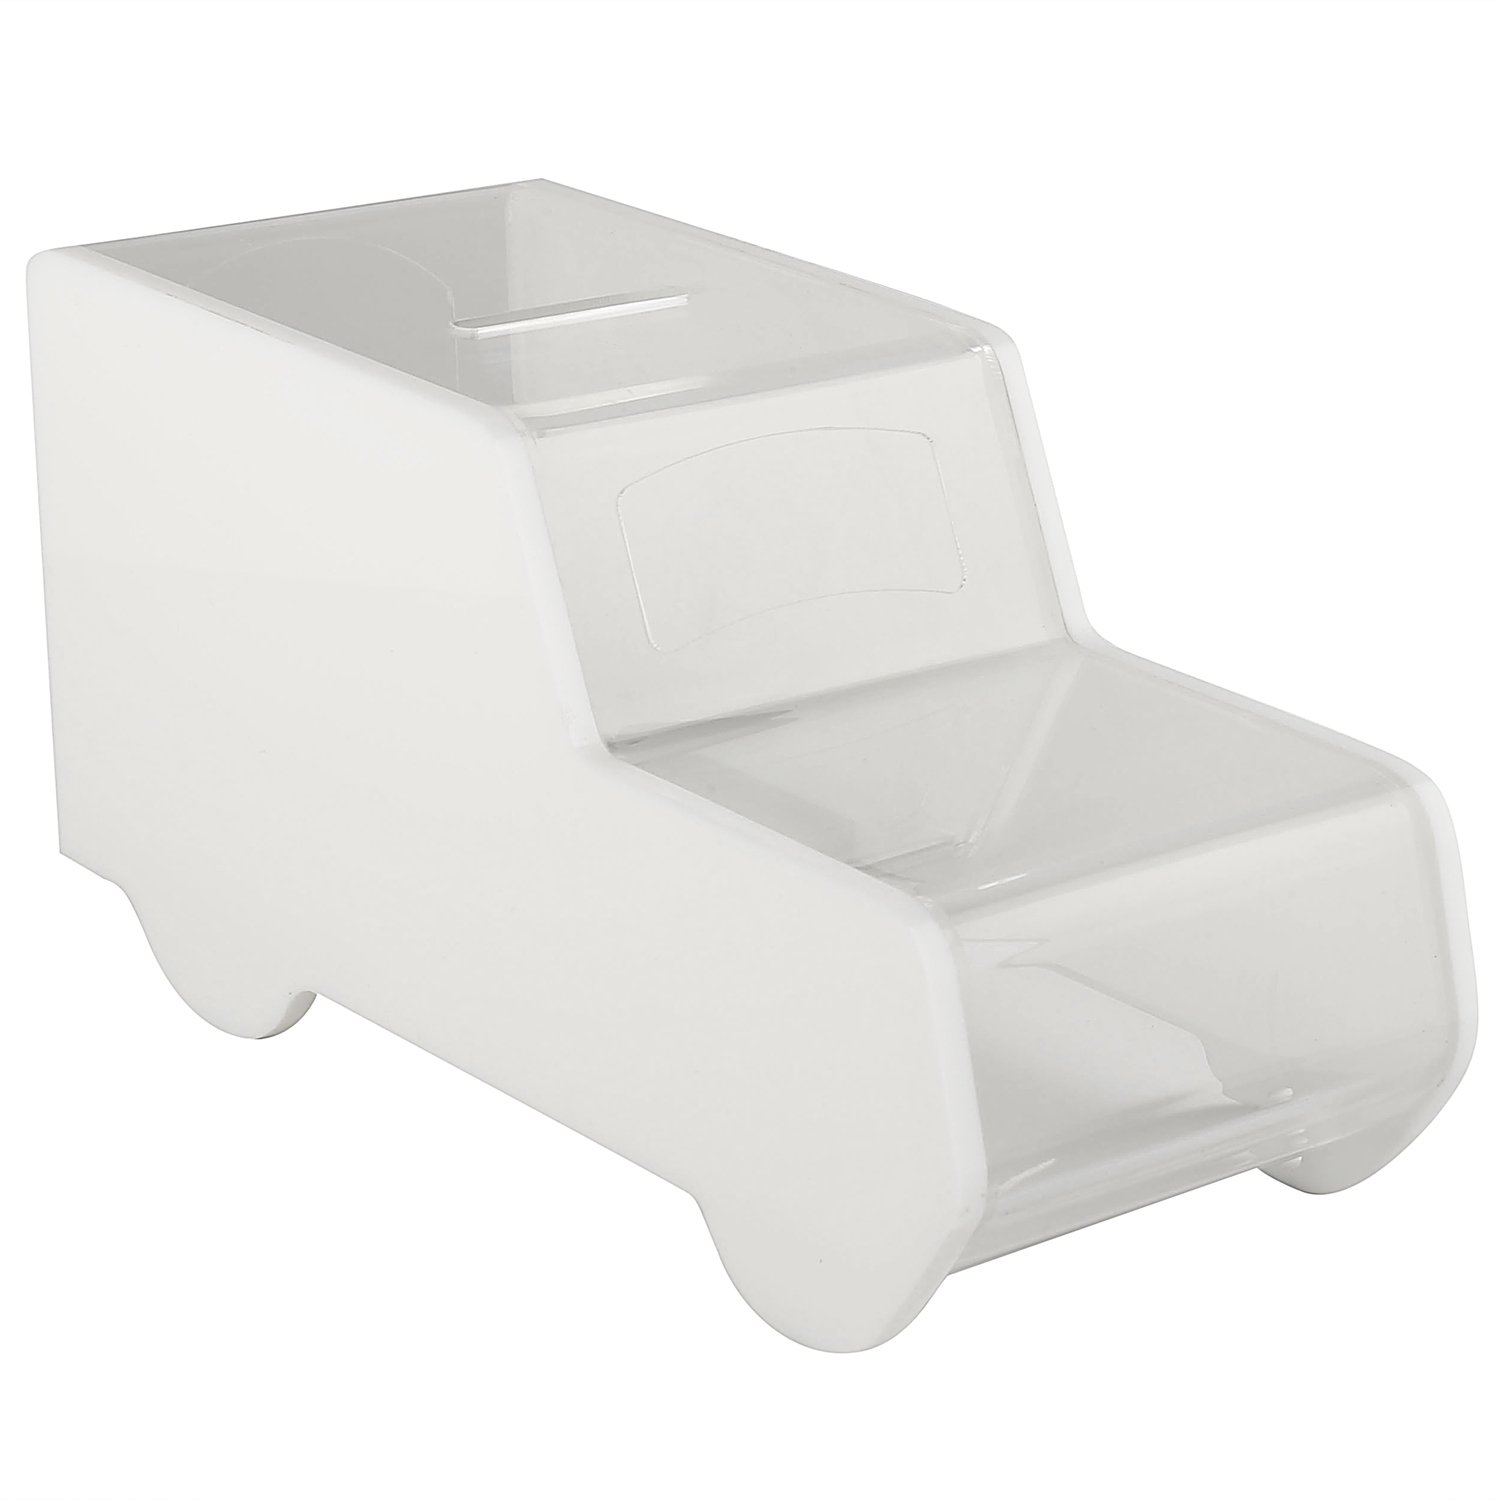 Collection Box Clear Collection Box Ambulance//Truck Acrylic Box MCB Tip Container Charity Box